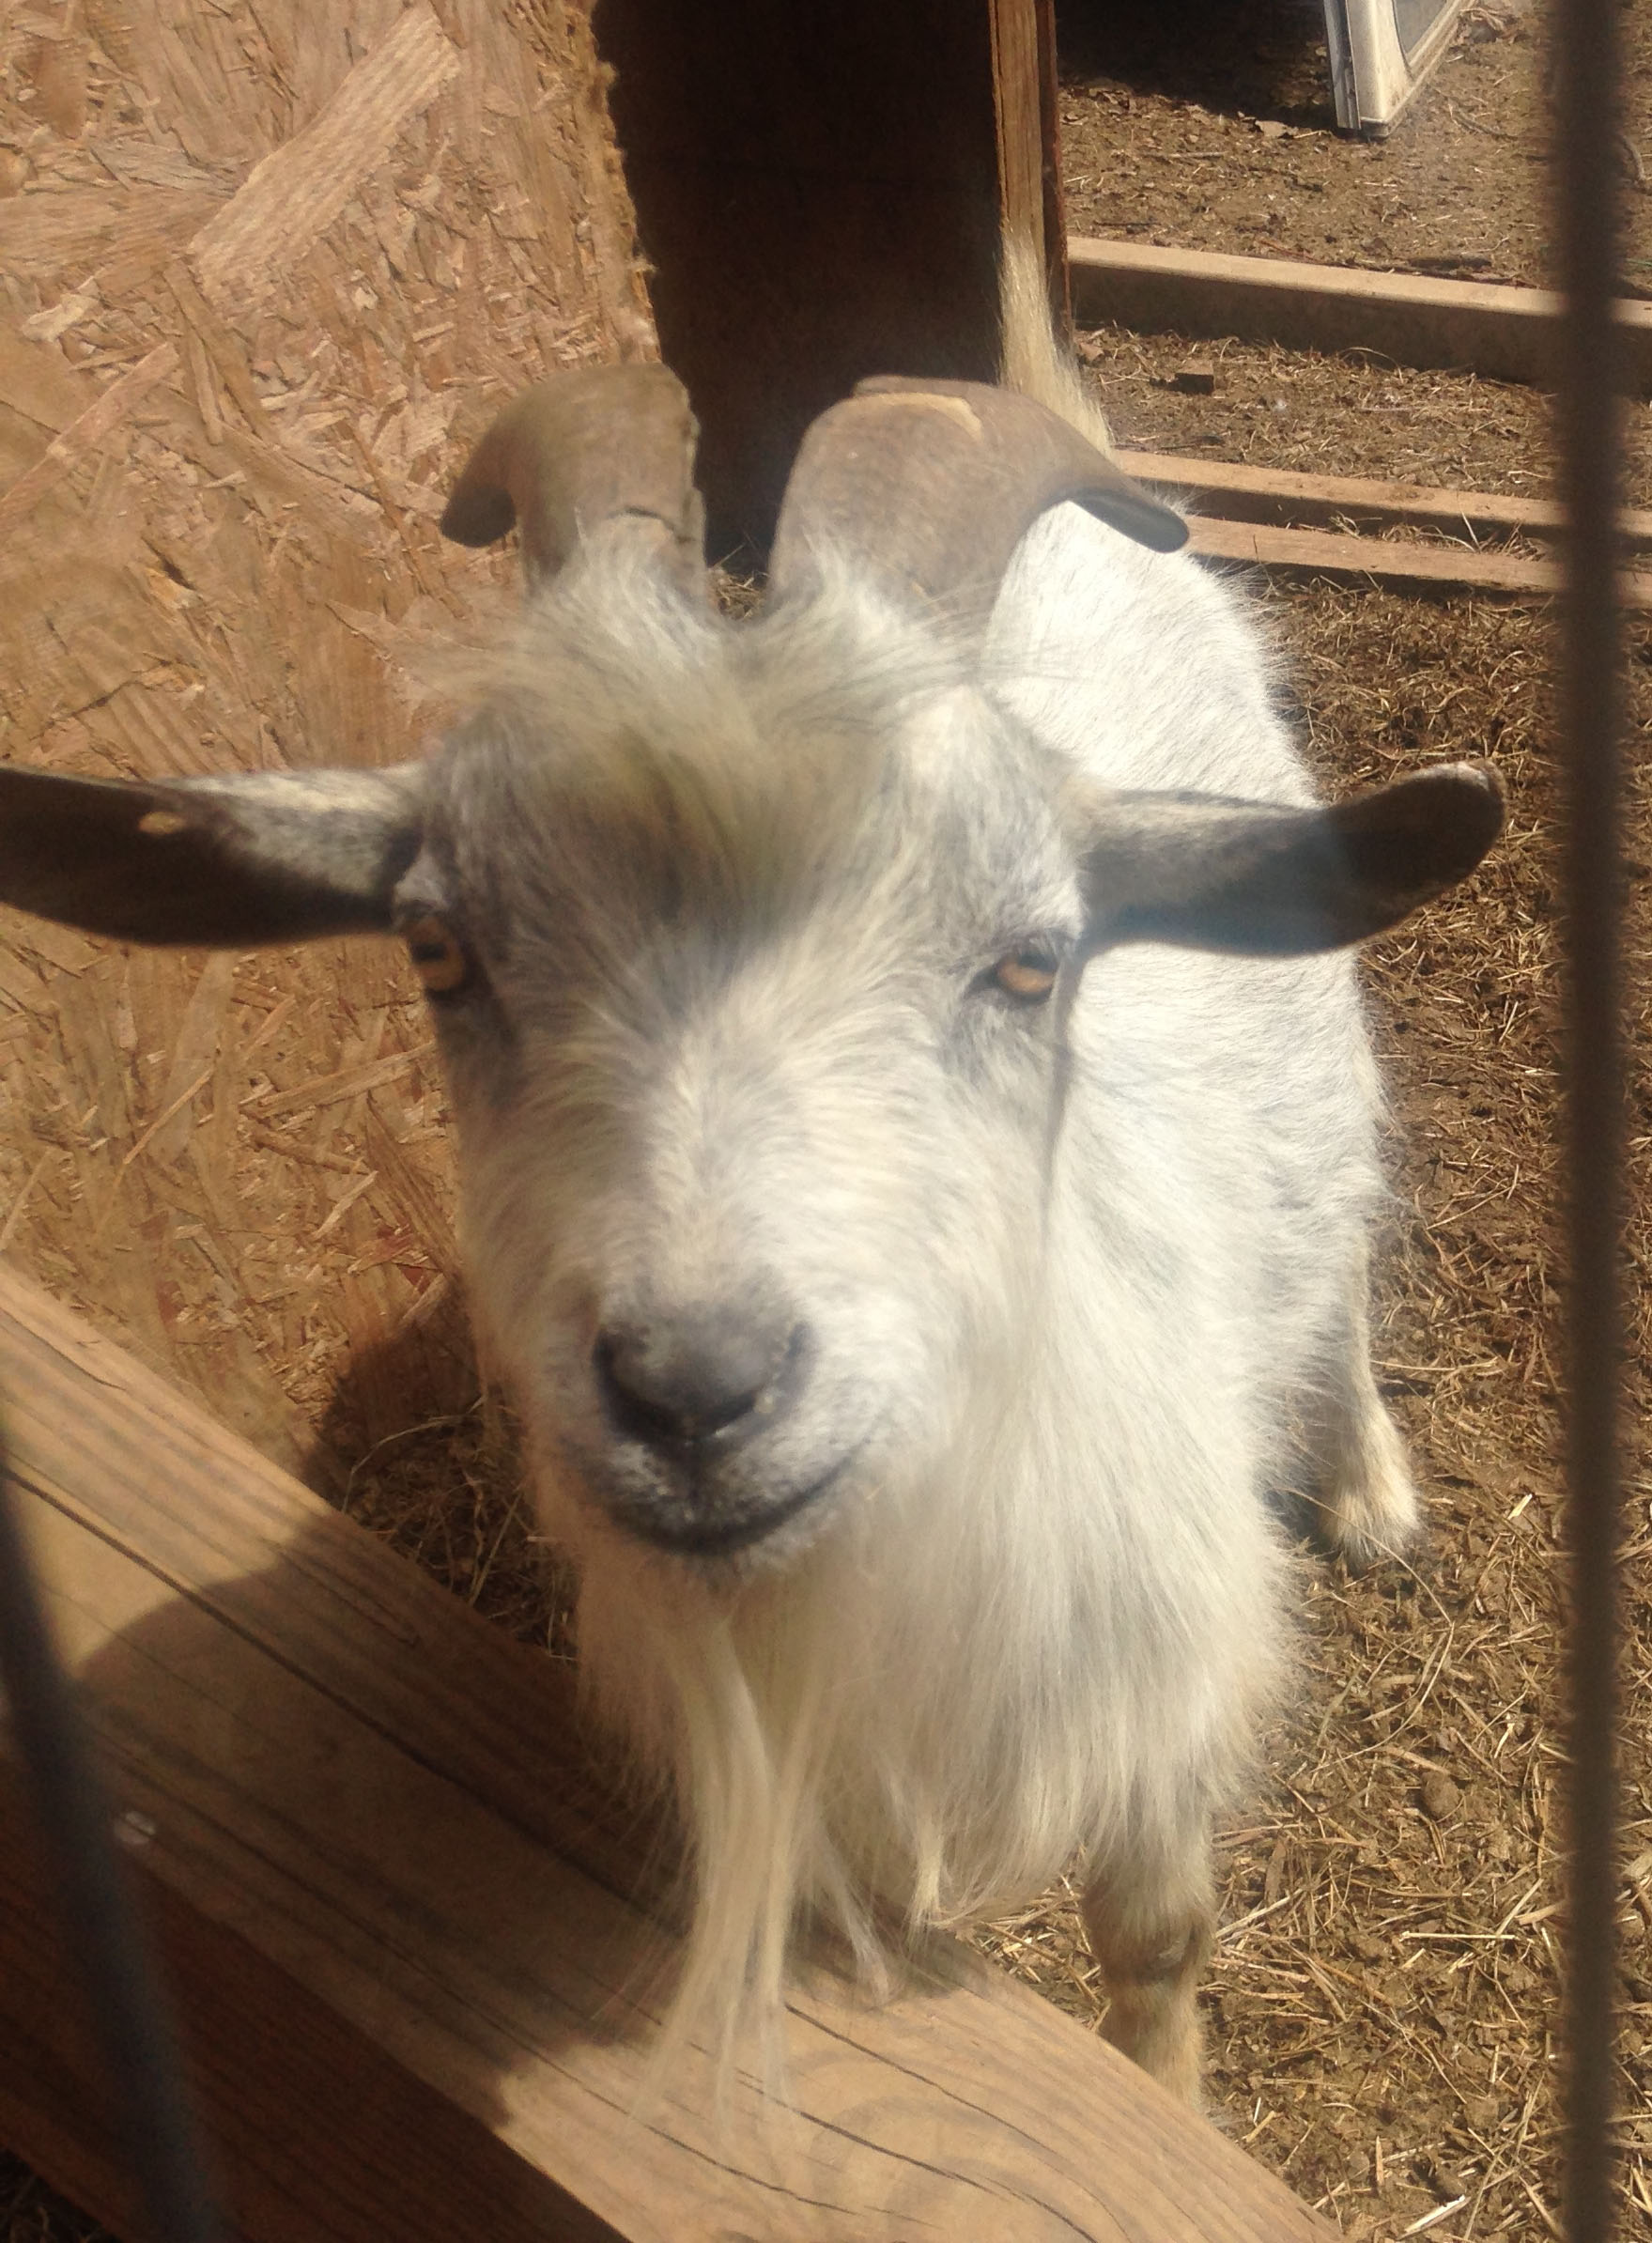 Breezy Hill Alpaca Farm, small & friendly goat happy to pose for the camera.